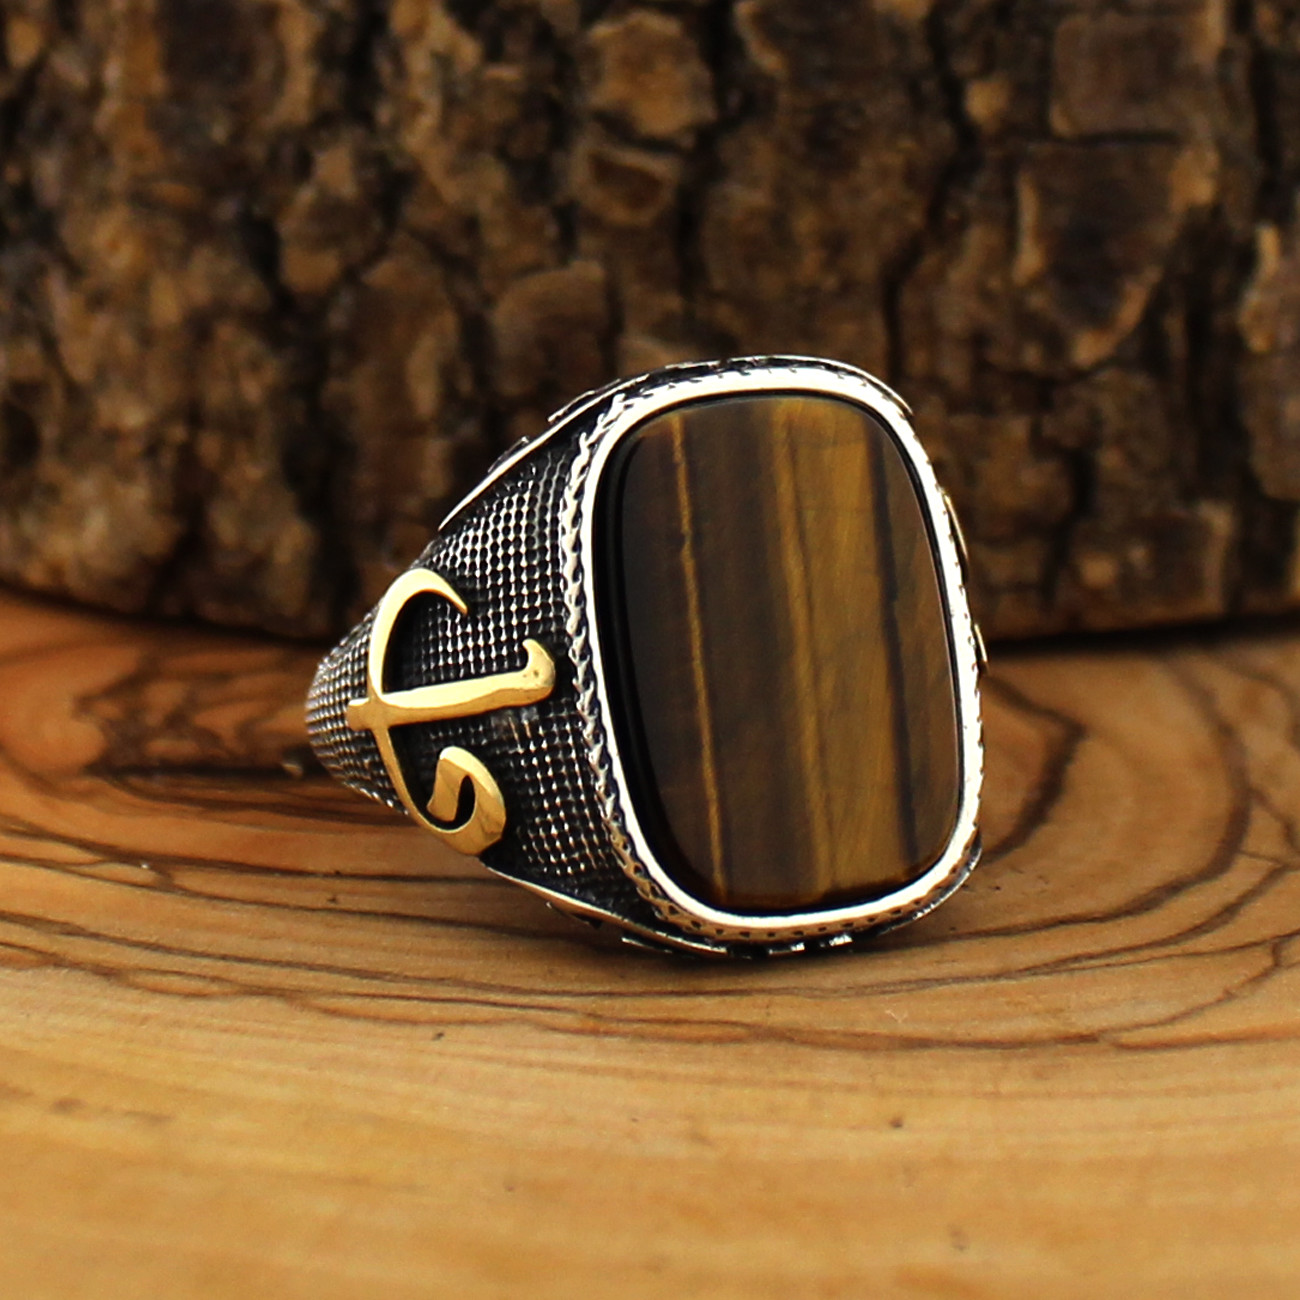 925 Sterling Silver Ring For Men With Tiger Eye Stone (Made In Turkey)